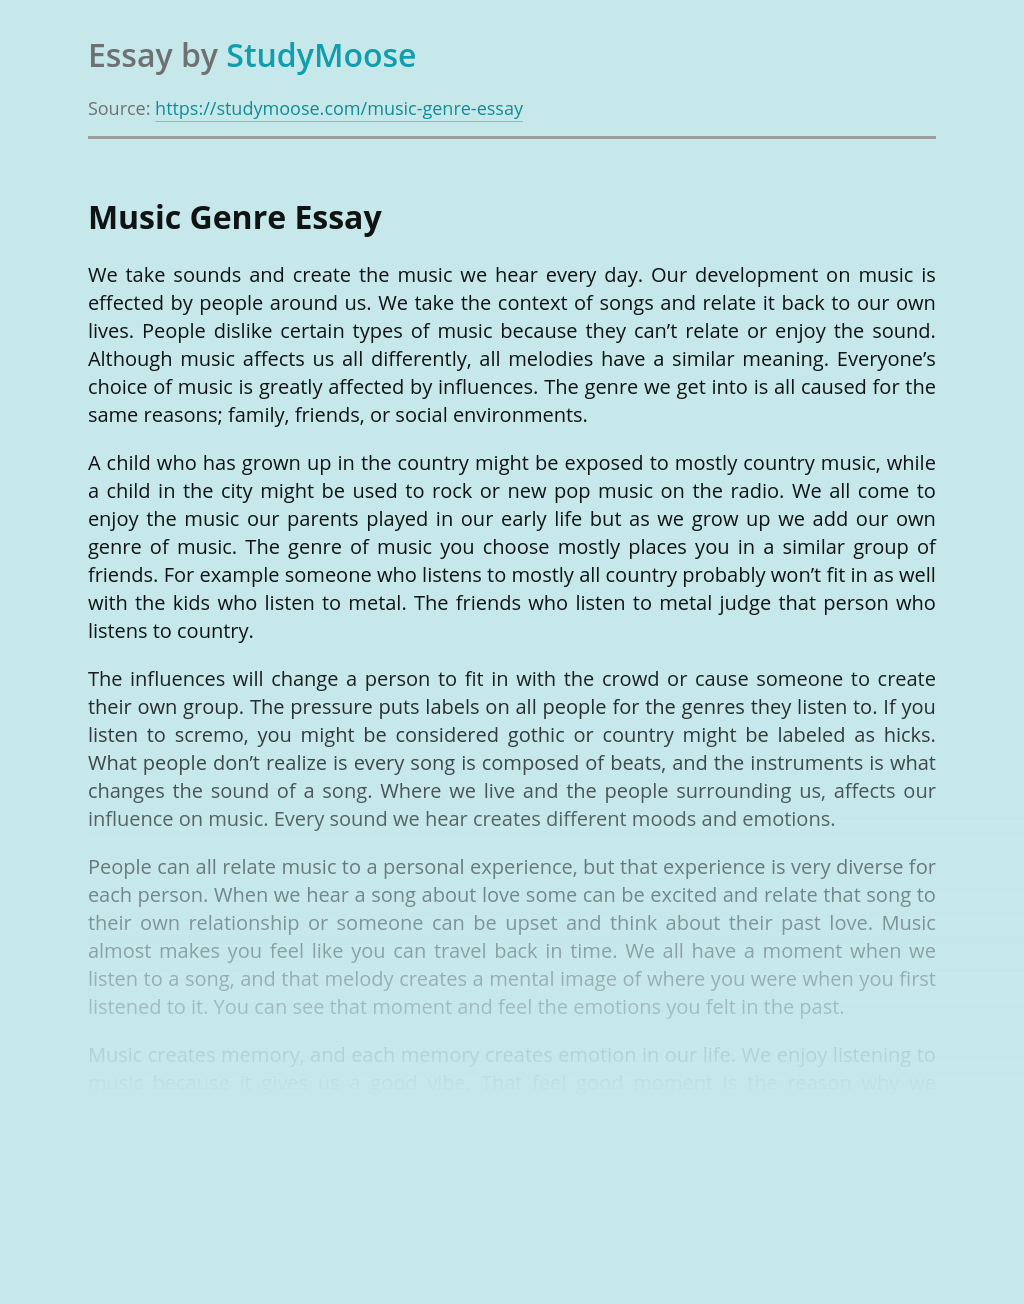 Essay for music